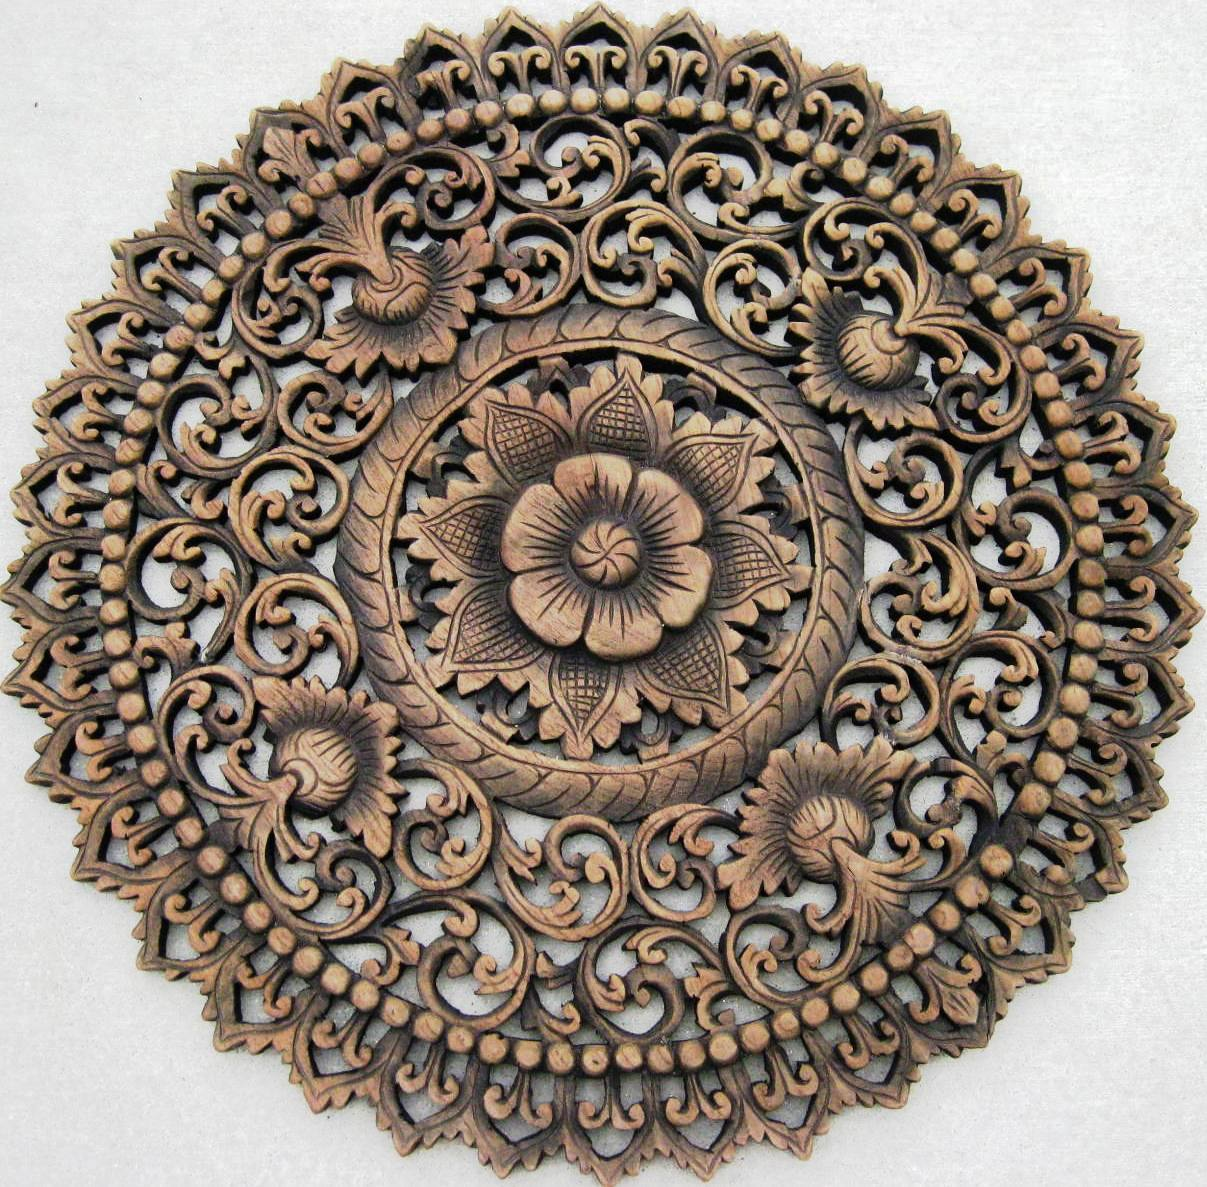 Wood carving in the round patterns year of clean water